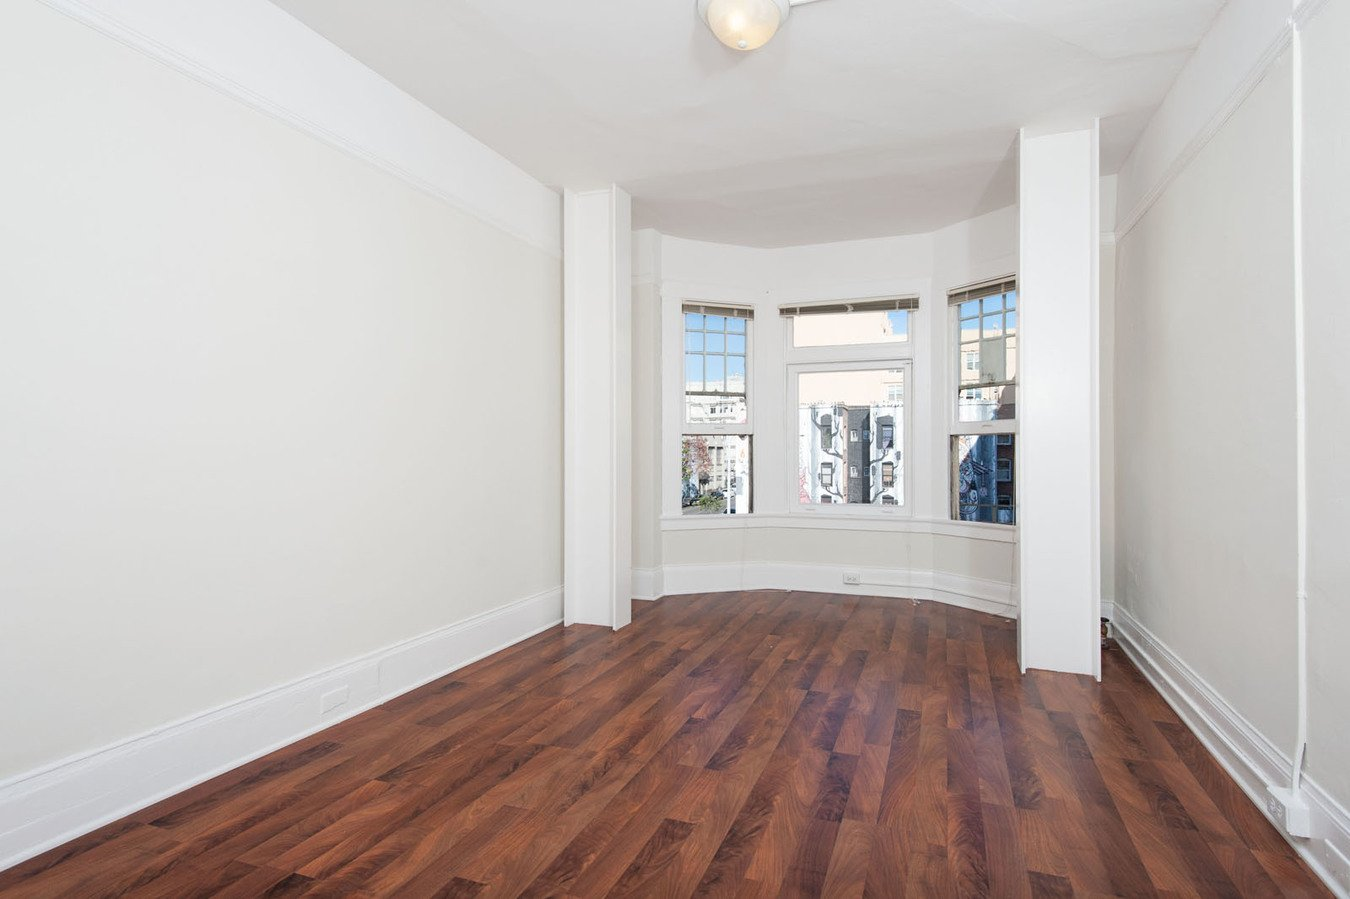 1 Bedroom 1 Bathroom Apartment for rent at 381 Turk Apartments in San Francisco, CA